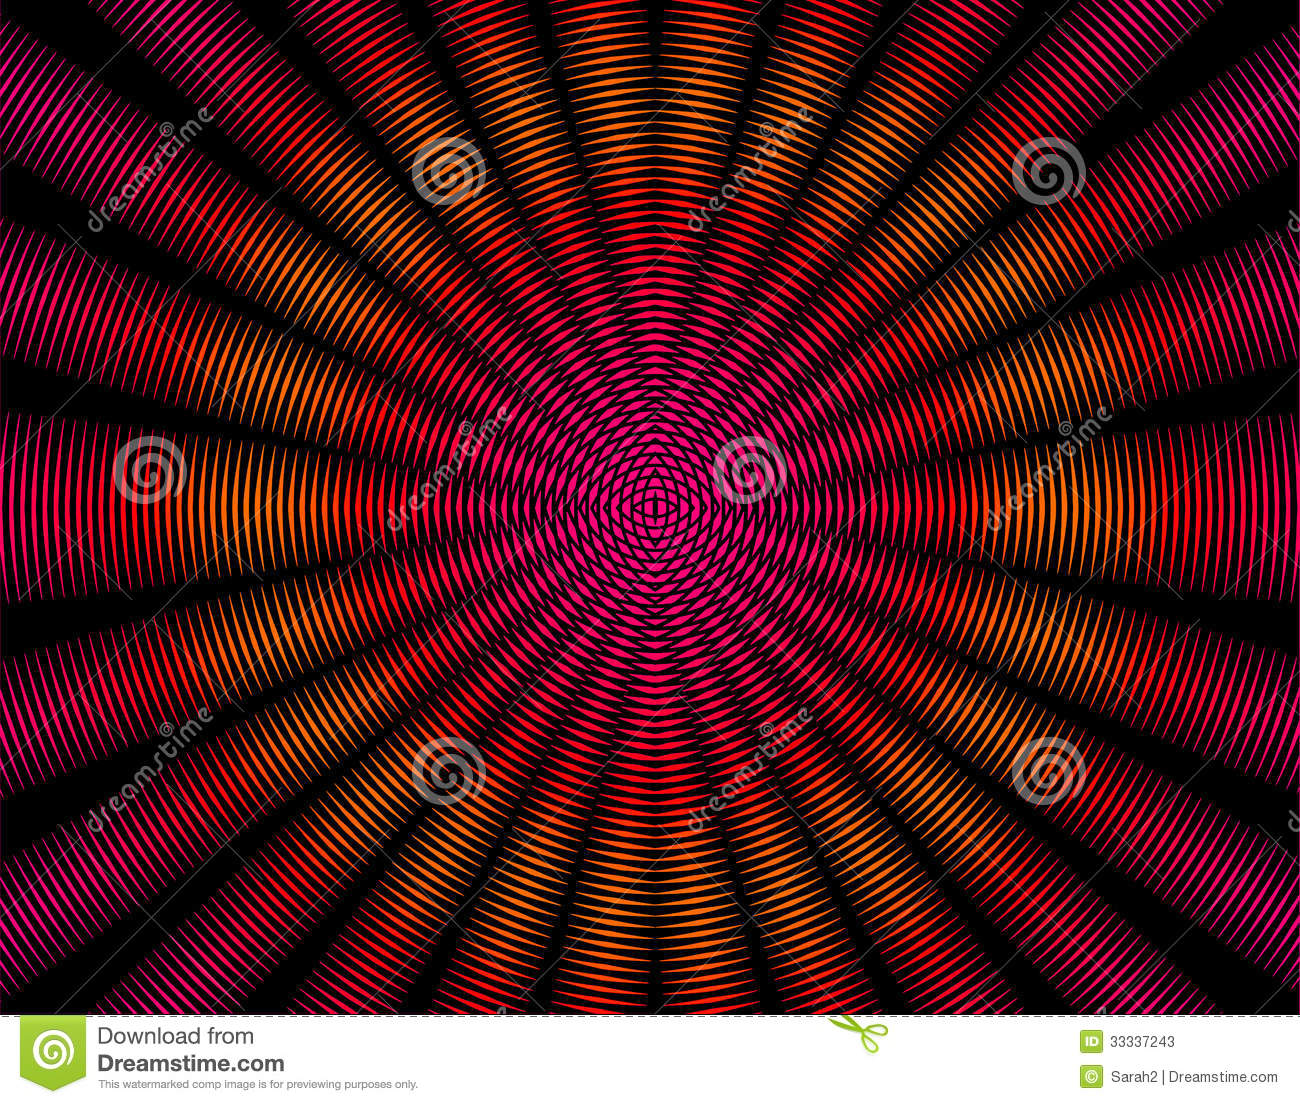 Interference Pattern Unique Inspiration Design